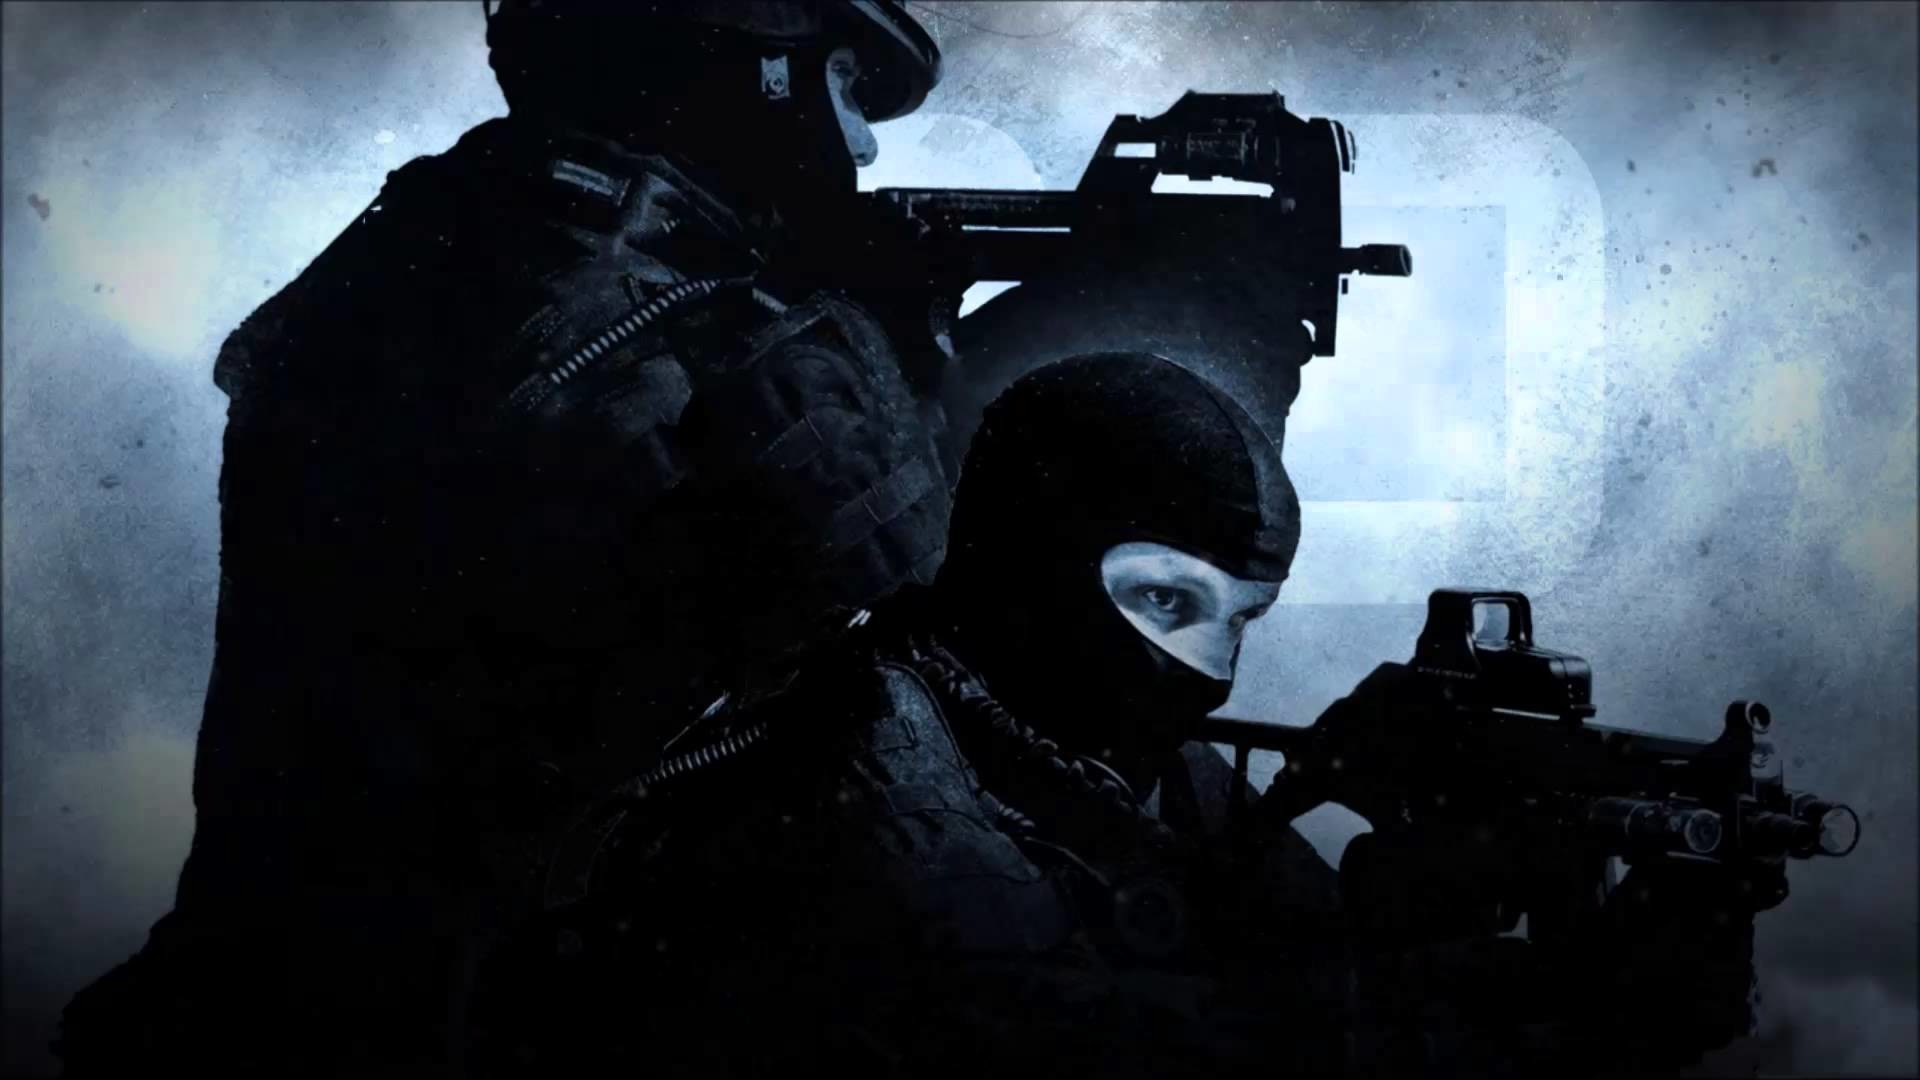 1920x1080 Counter Strike Global Offensive Full HD Wallpaper and Theme Music 2